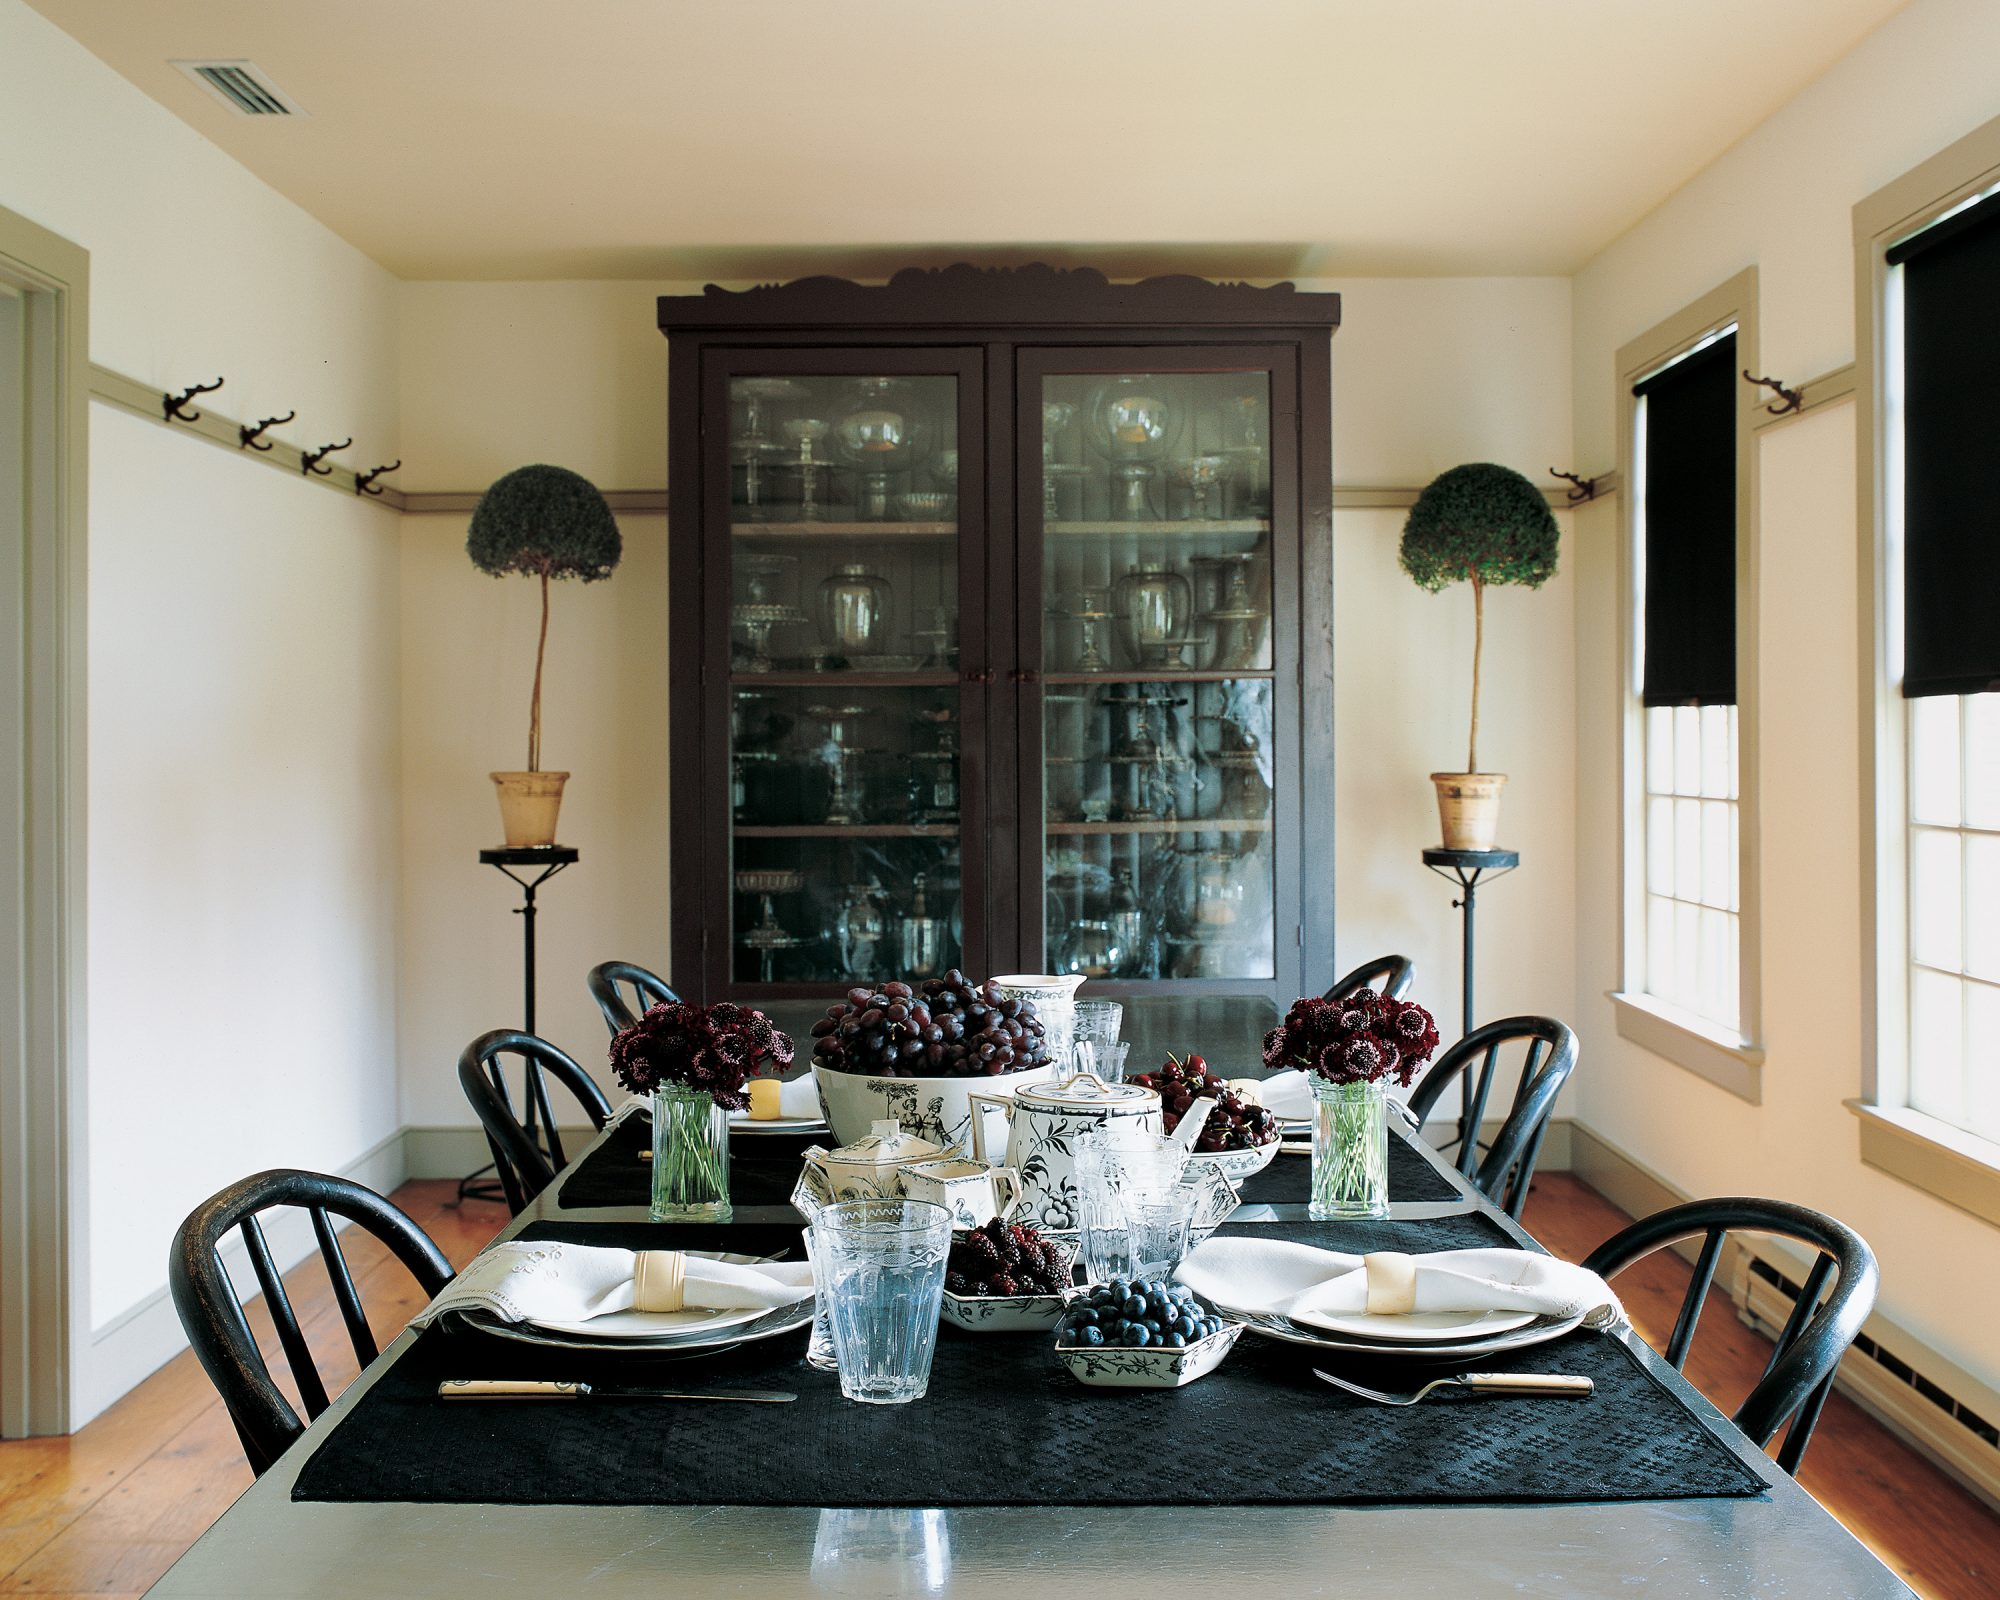 black furniture in dining room